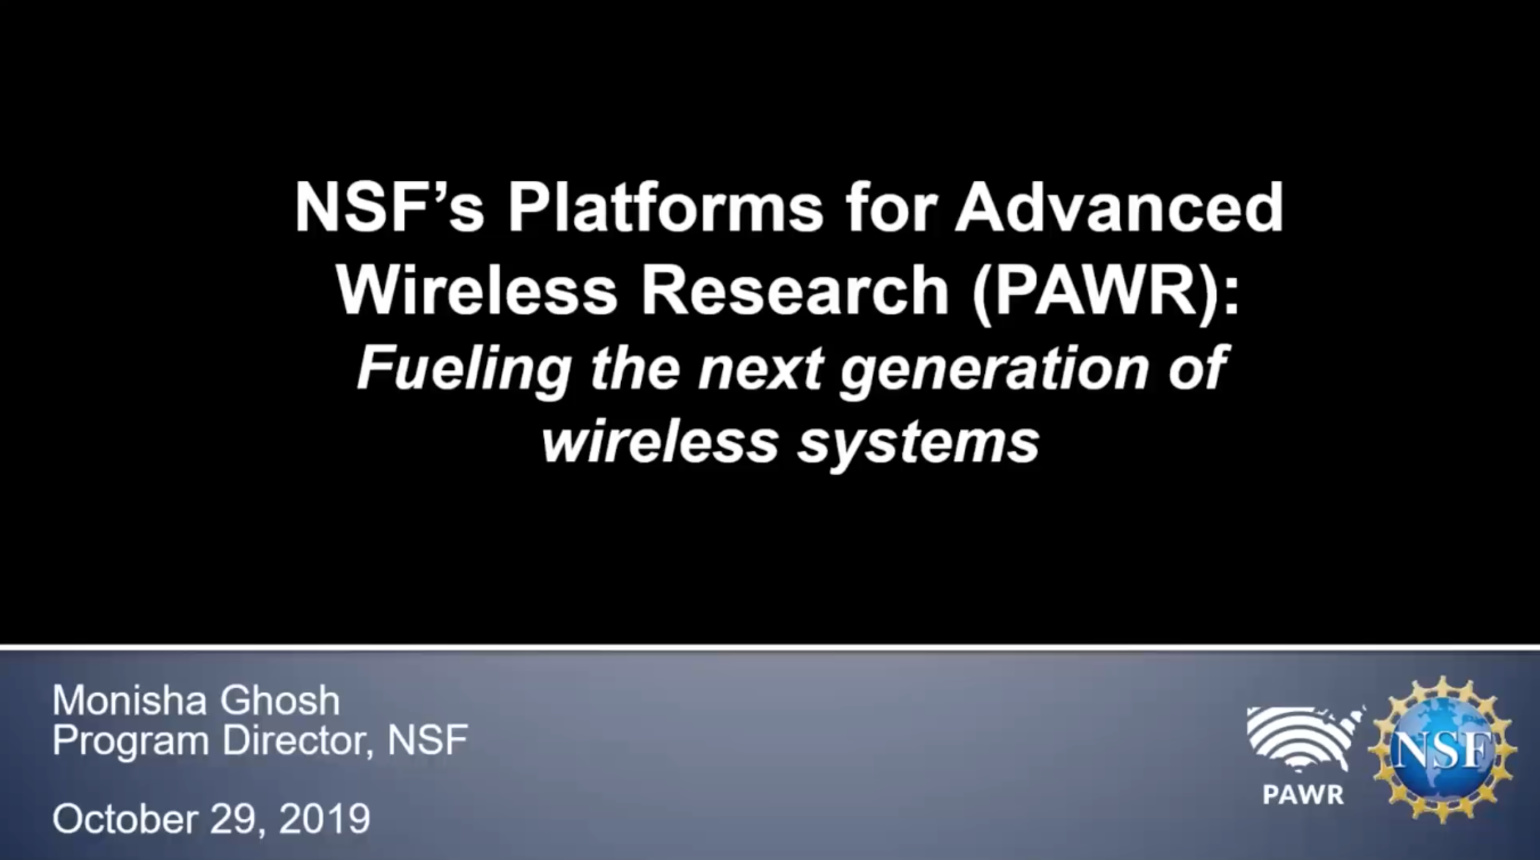 NSF's Platforms for Advanced Wireless Research (PAWR) - IEEE Future Networks Webinar